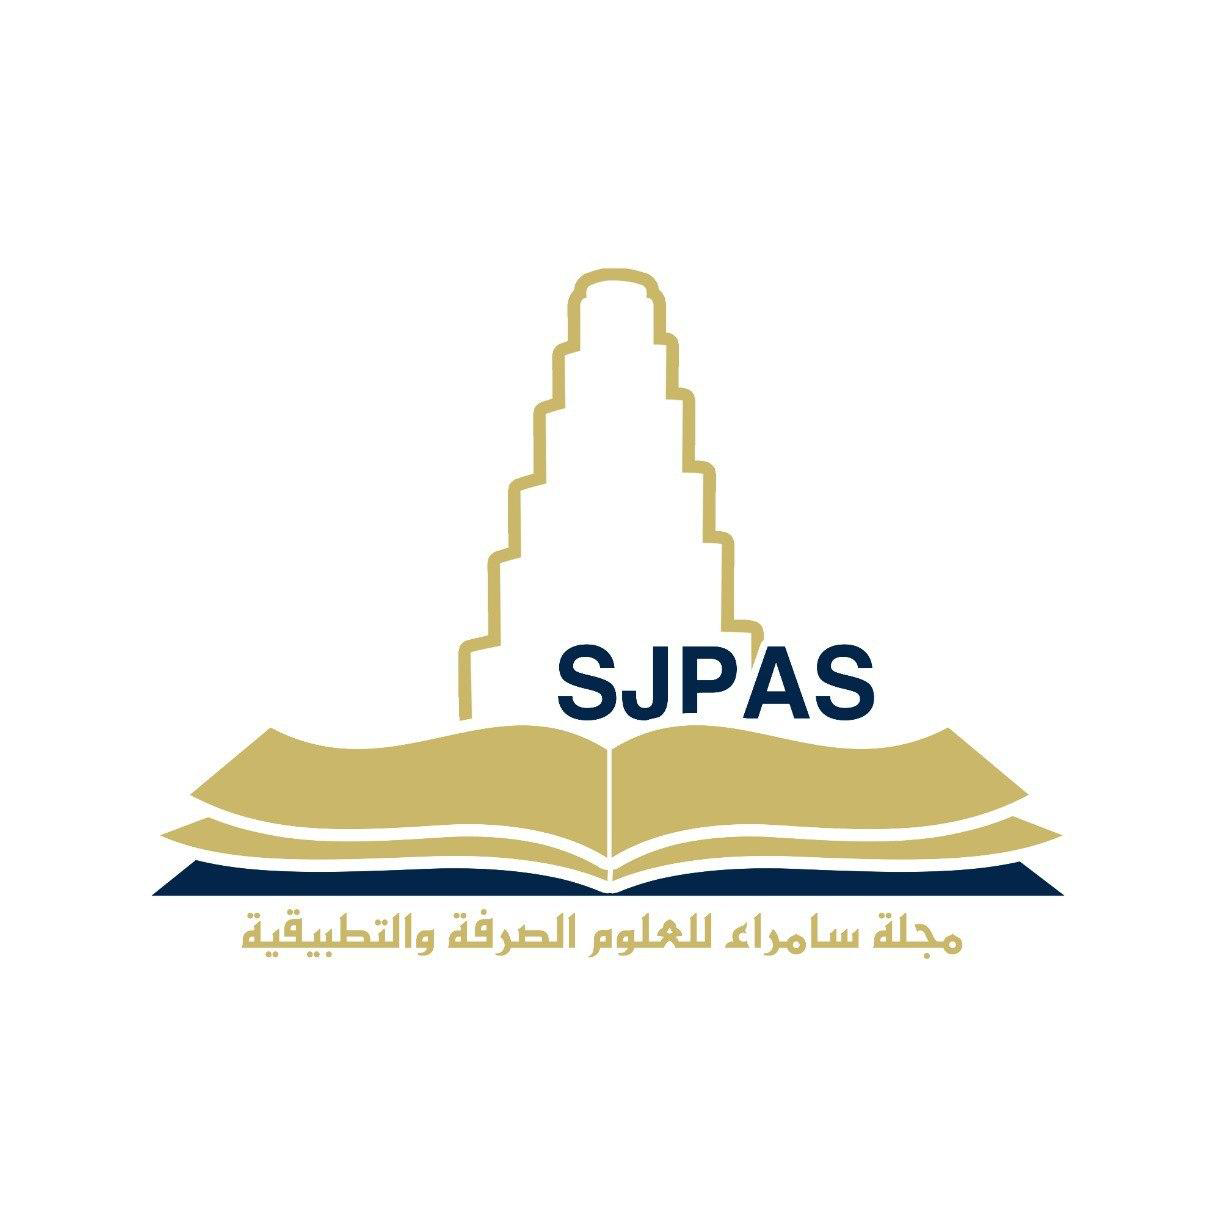 Samarra Journal of Pure and Applied Science